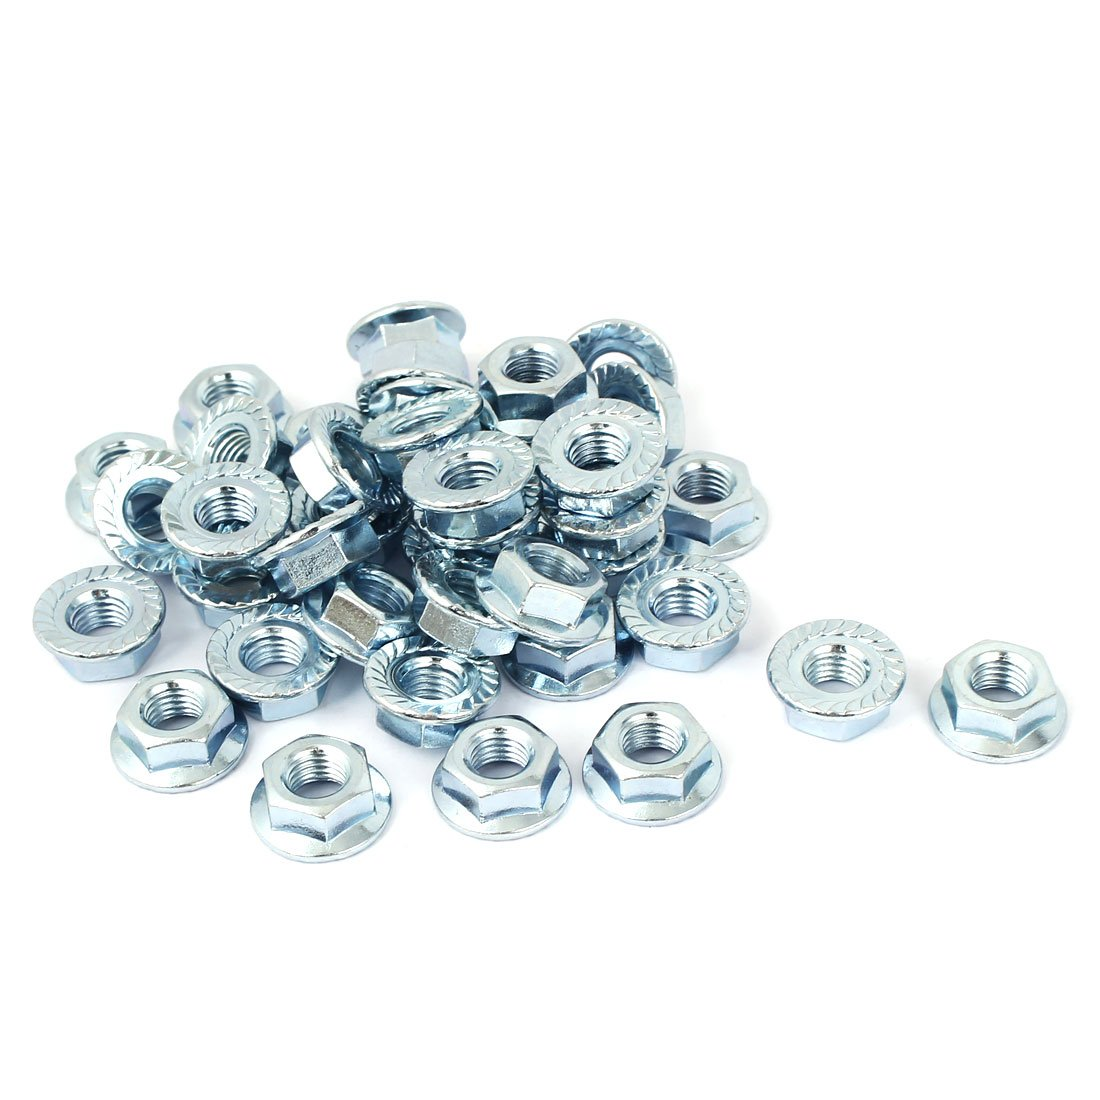 Carbon Steel 40 Pcs uxcell/® 3//8-16 Serrated Flange Hex Lock Nuts